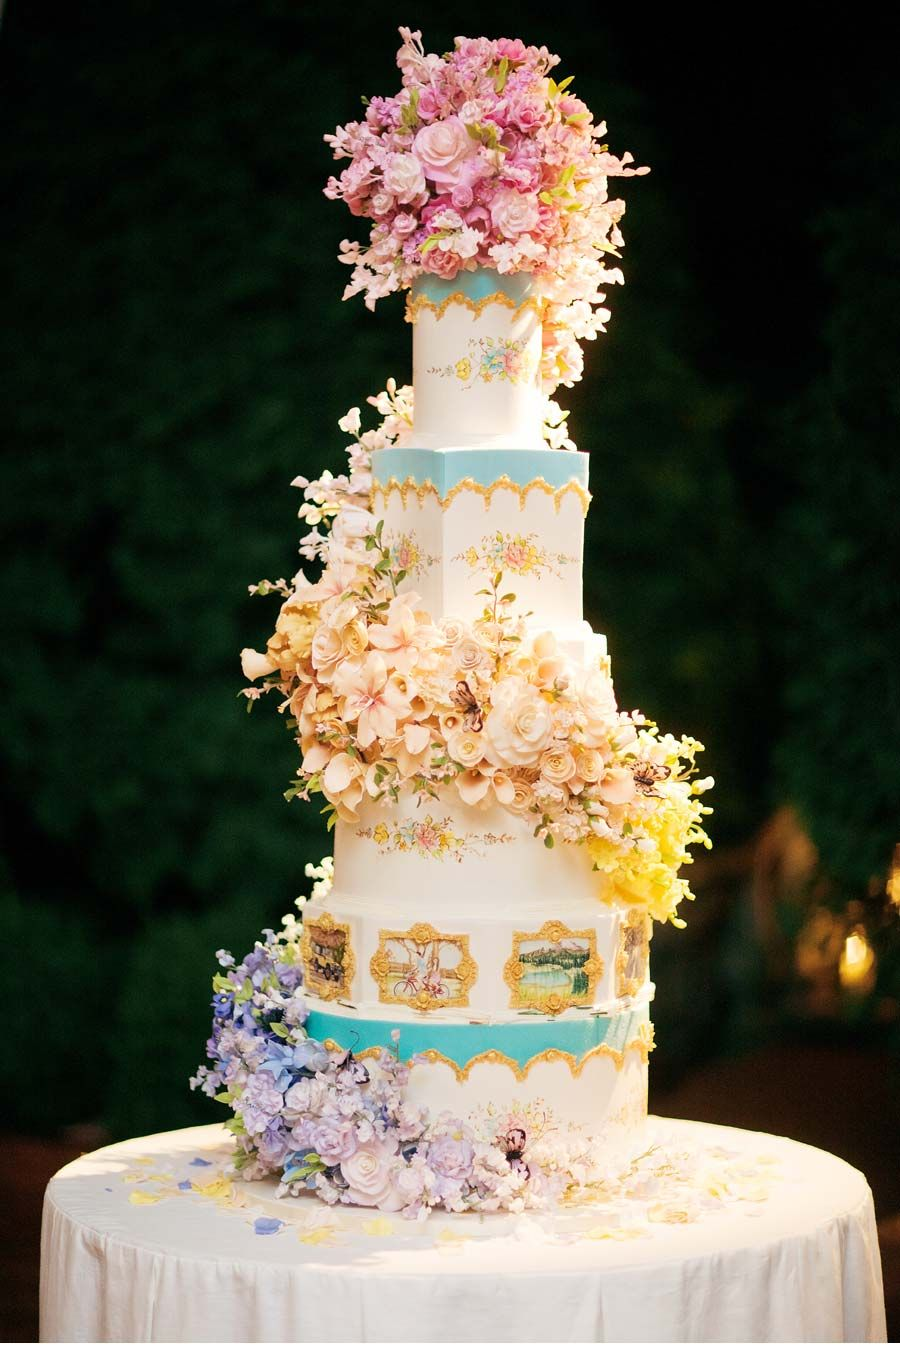 Ceci Style Whimsical Wedding Cakes Beautiful Wedding Cakes Wedding Cake Pictures